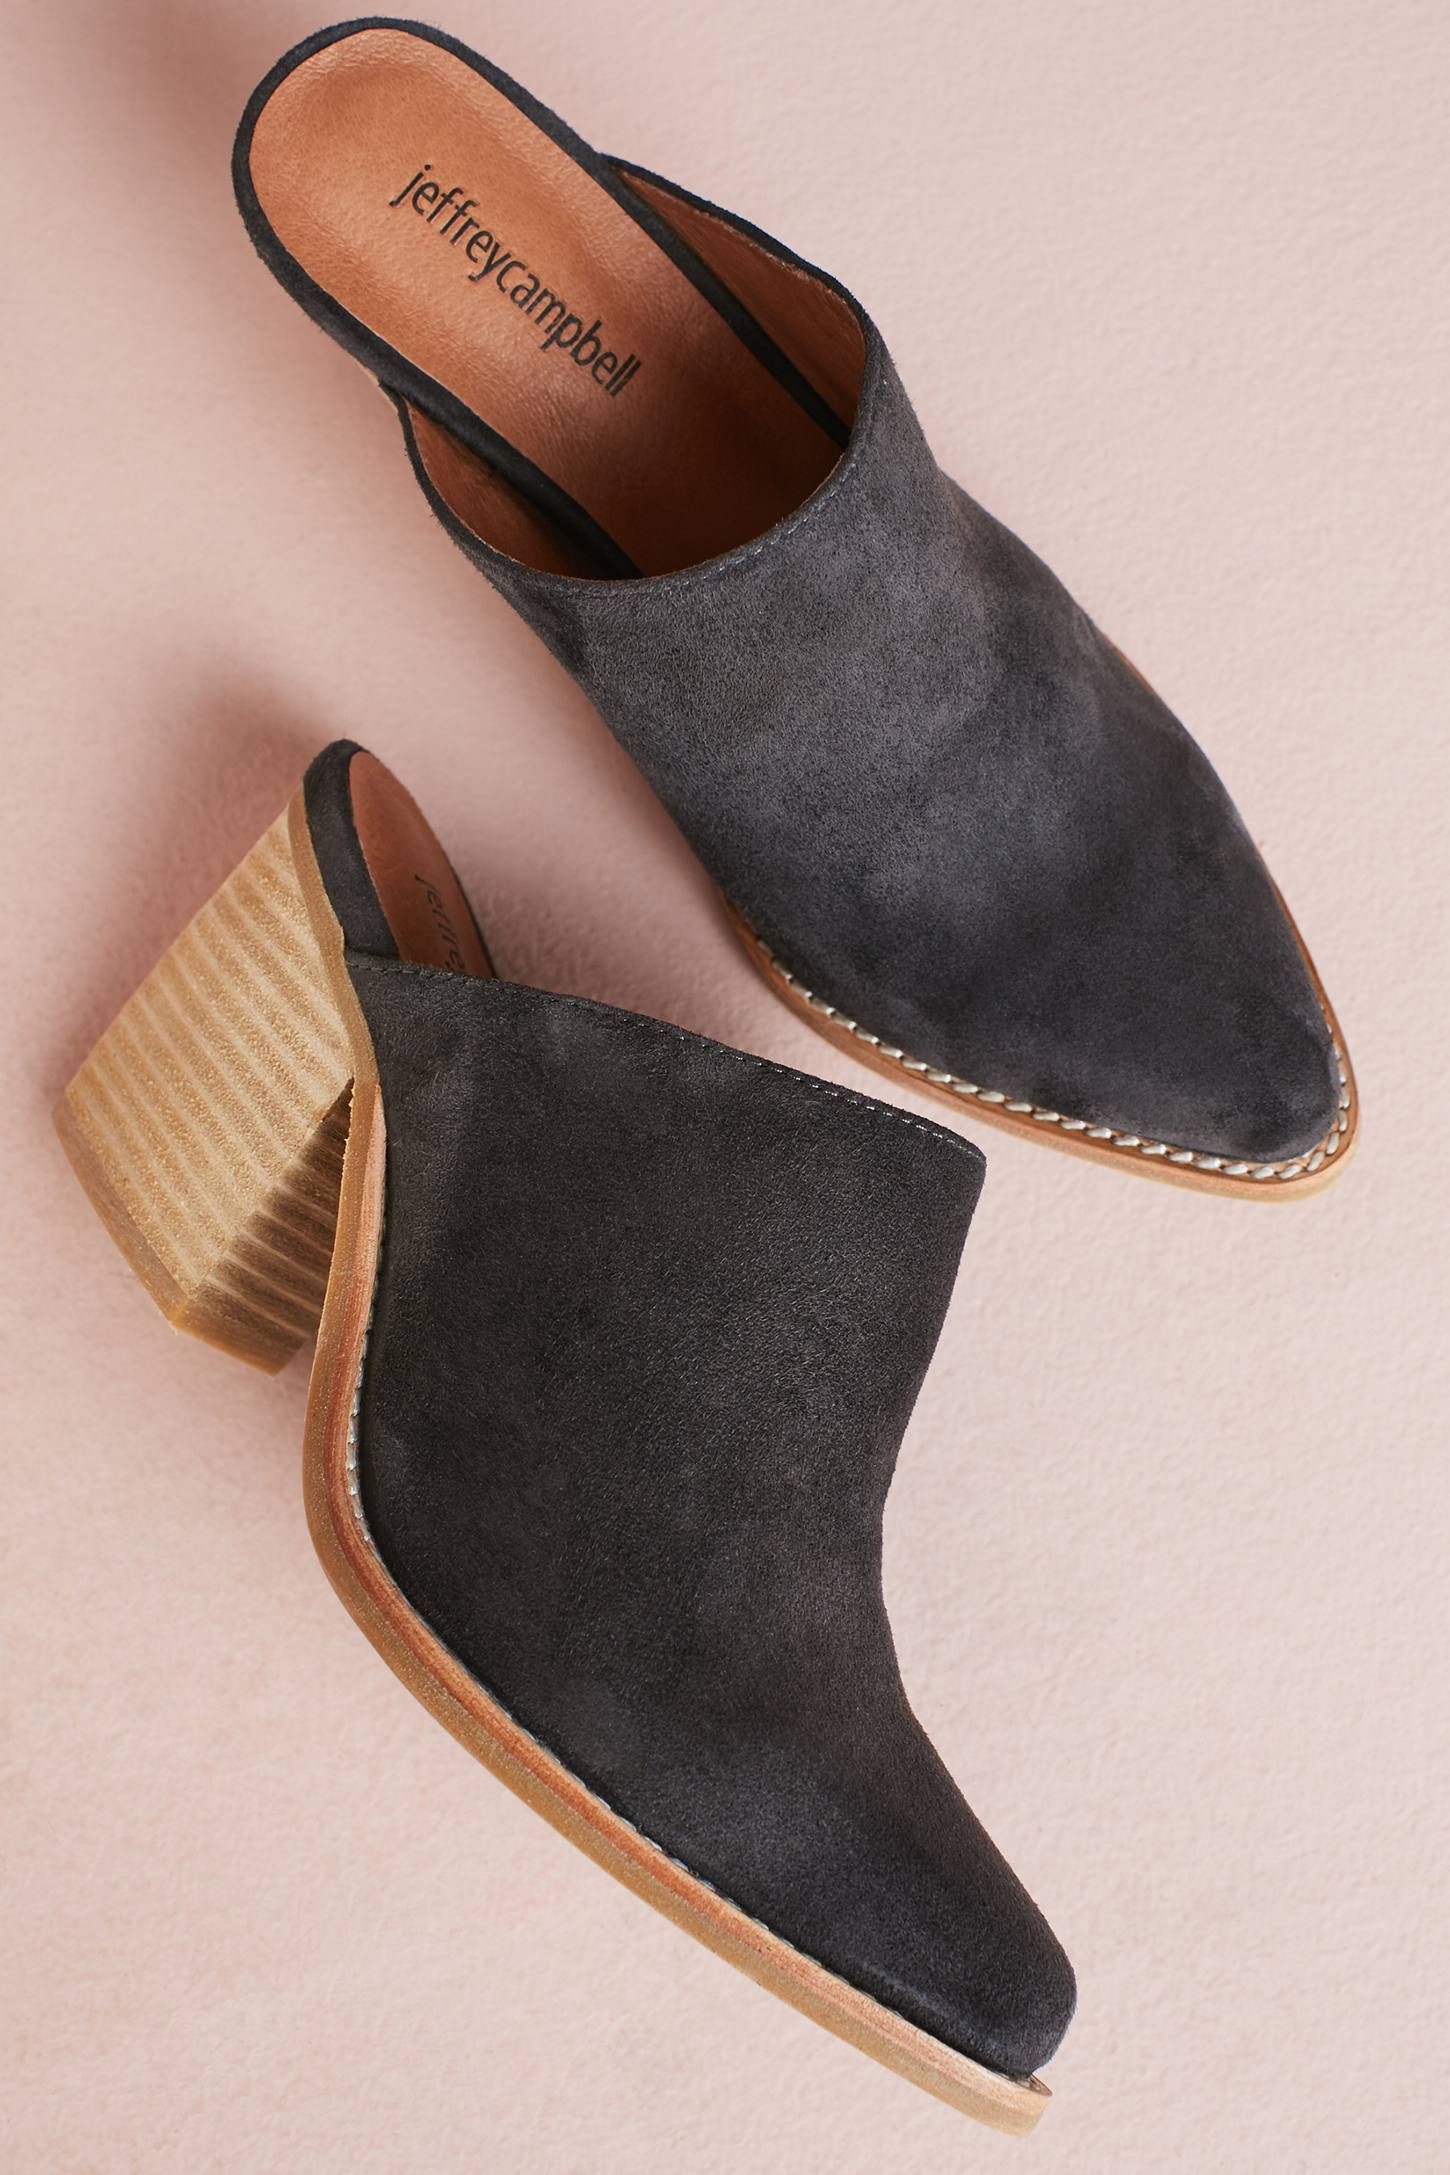 1bf03096a24 Shop the Jeffrey Campbell Favela Mules and more Anthropologie at  Anthropologie today. Read customer reviews